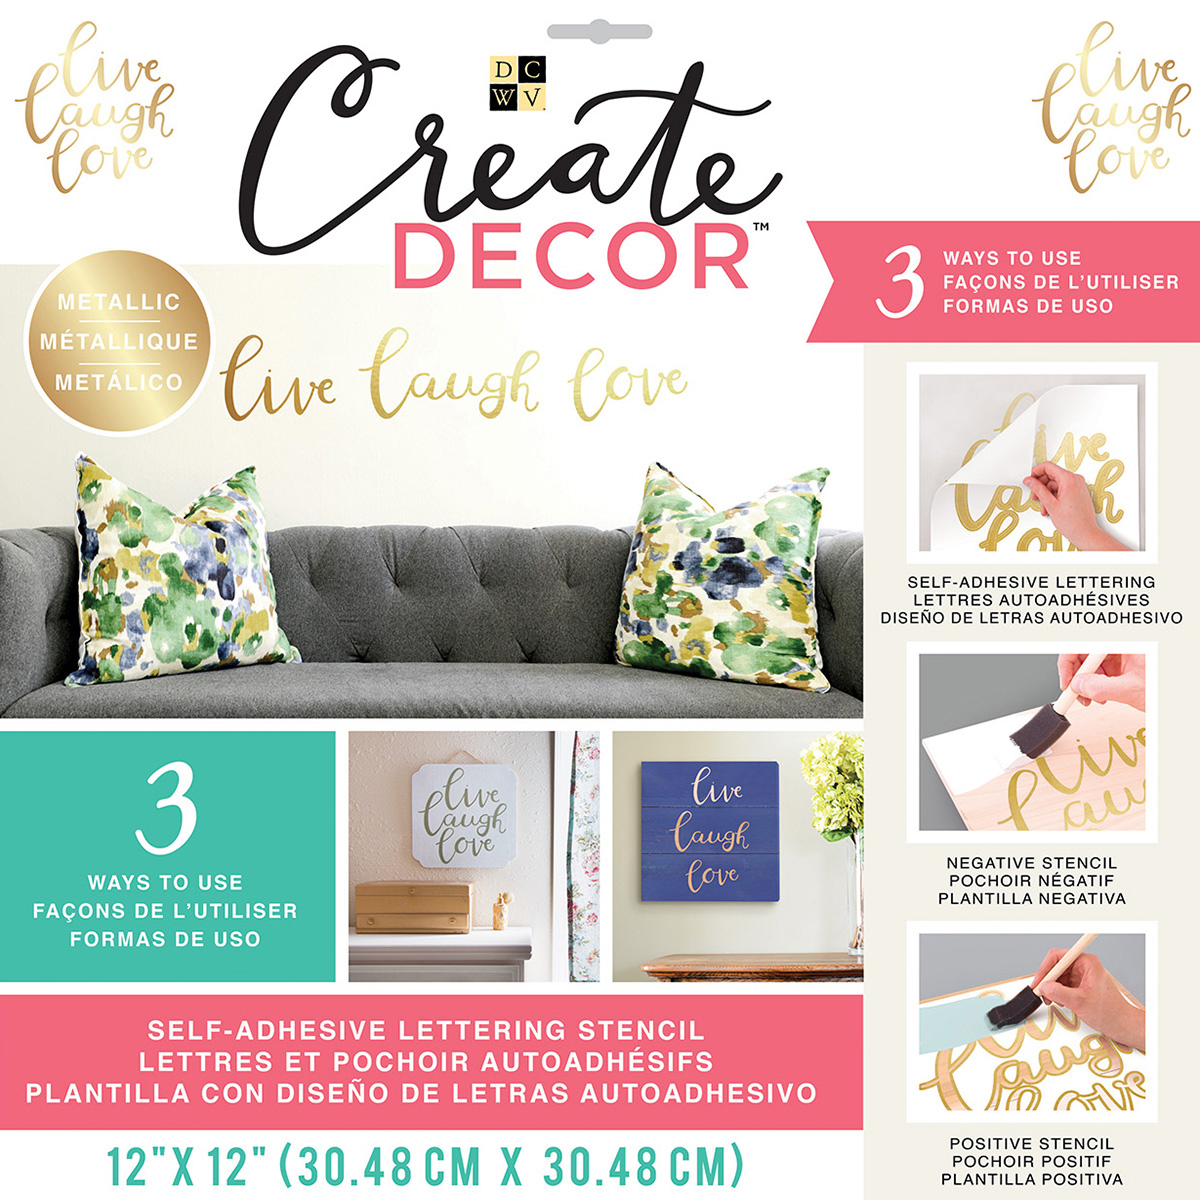 LIVE LAUGH LOVE - CREATE DECOR STENCIL